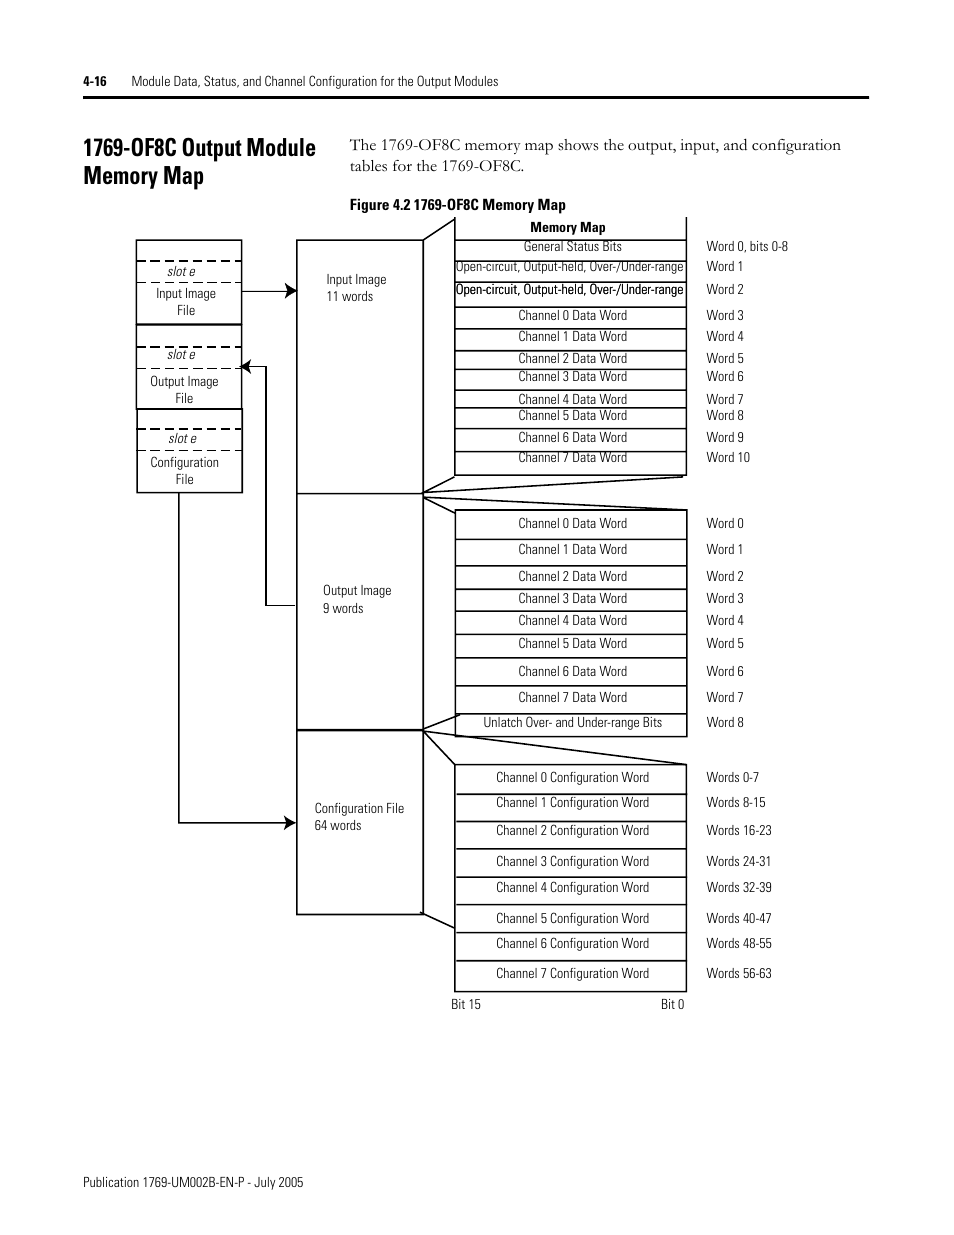 1769-of8c output module memory map, 1769-of8c output